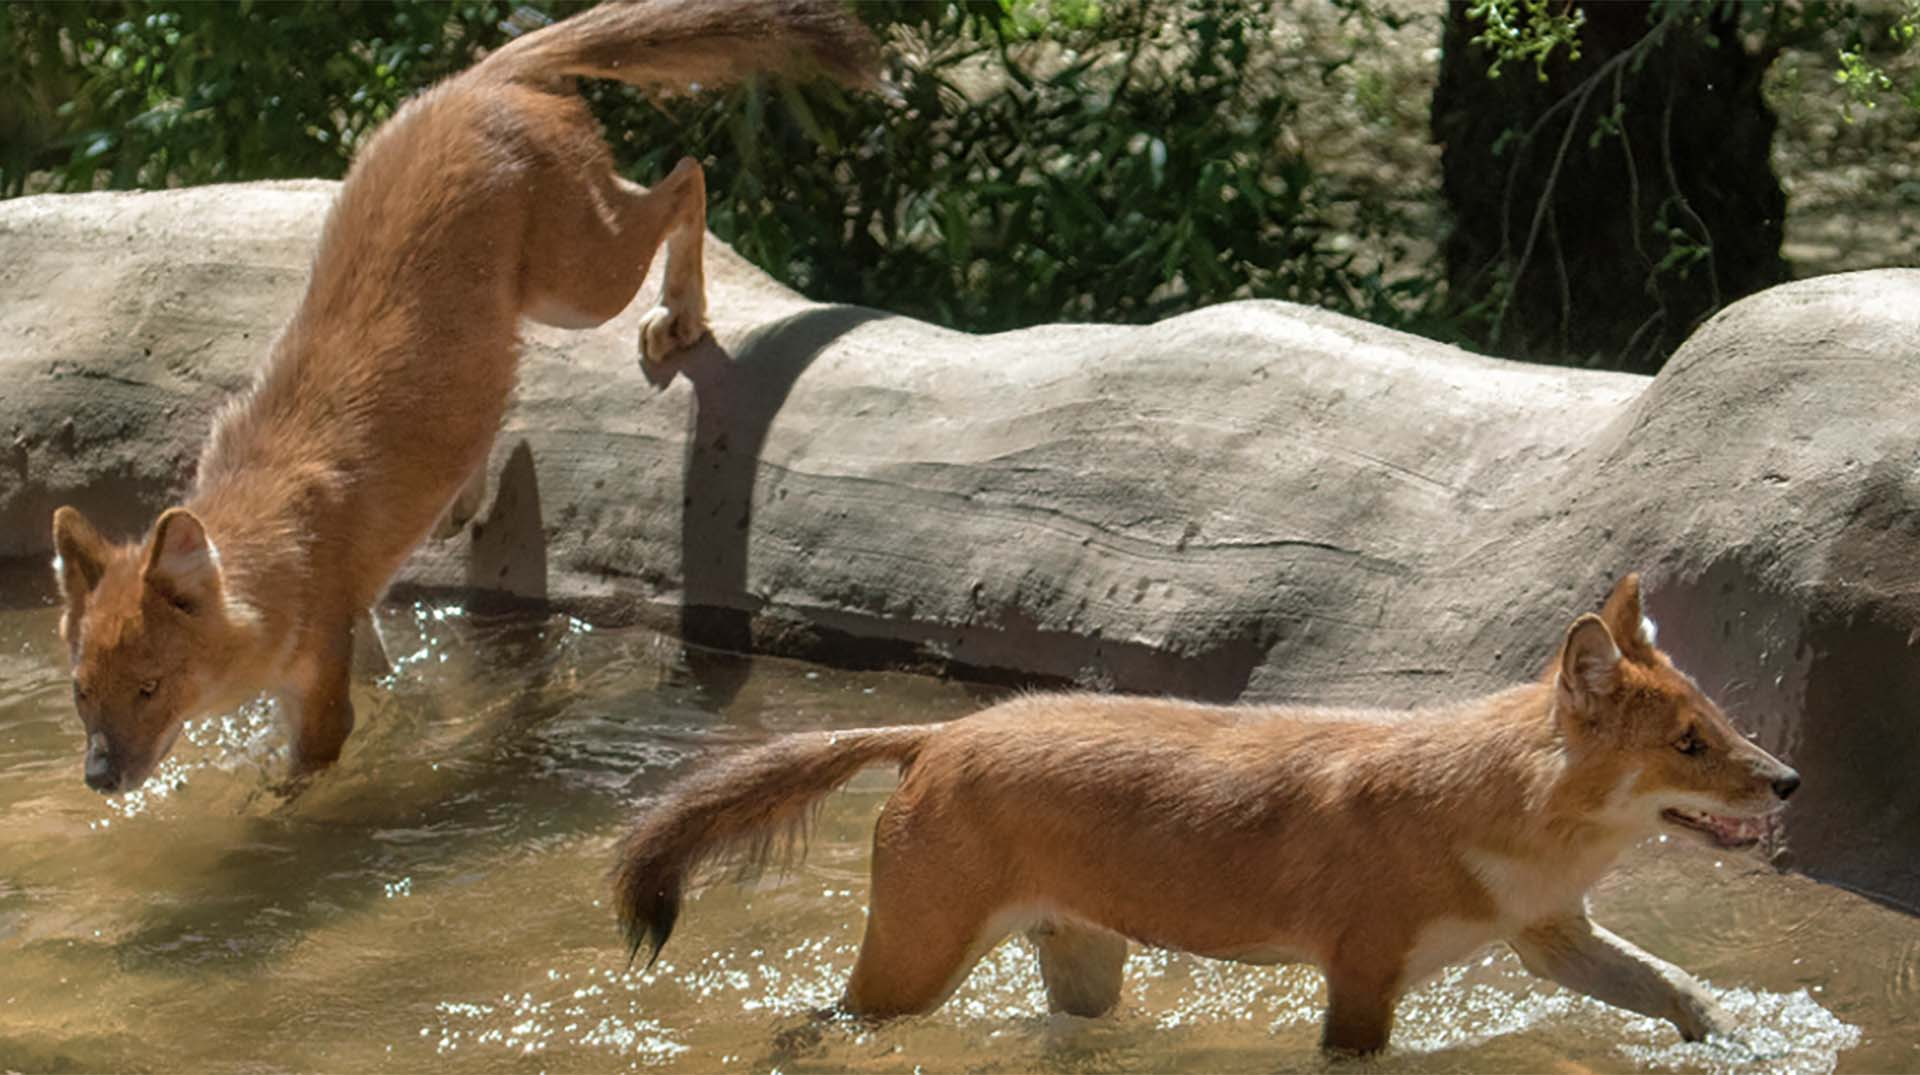 One dhole jumping over a wall into the pool and another wading in the water.